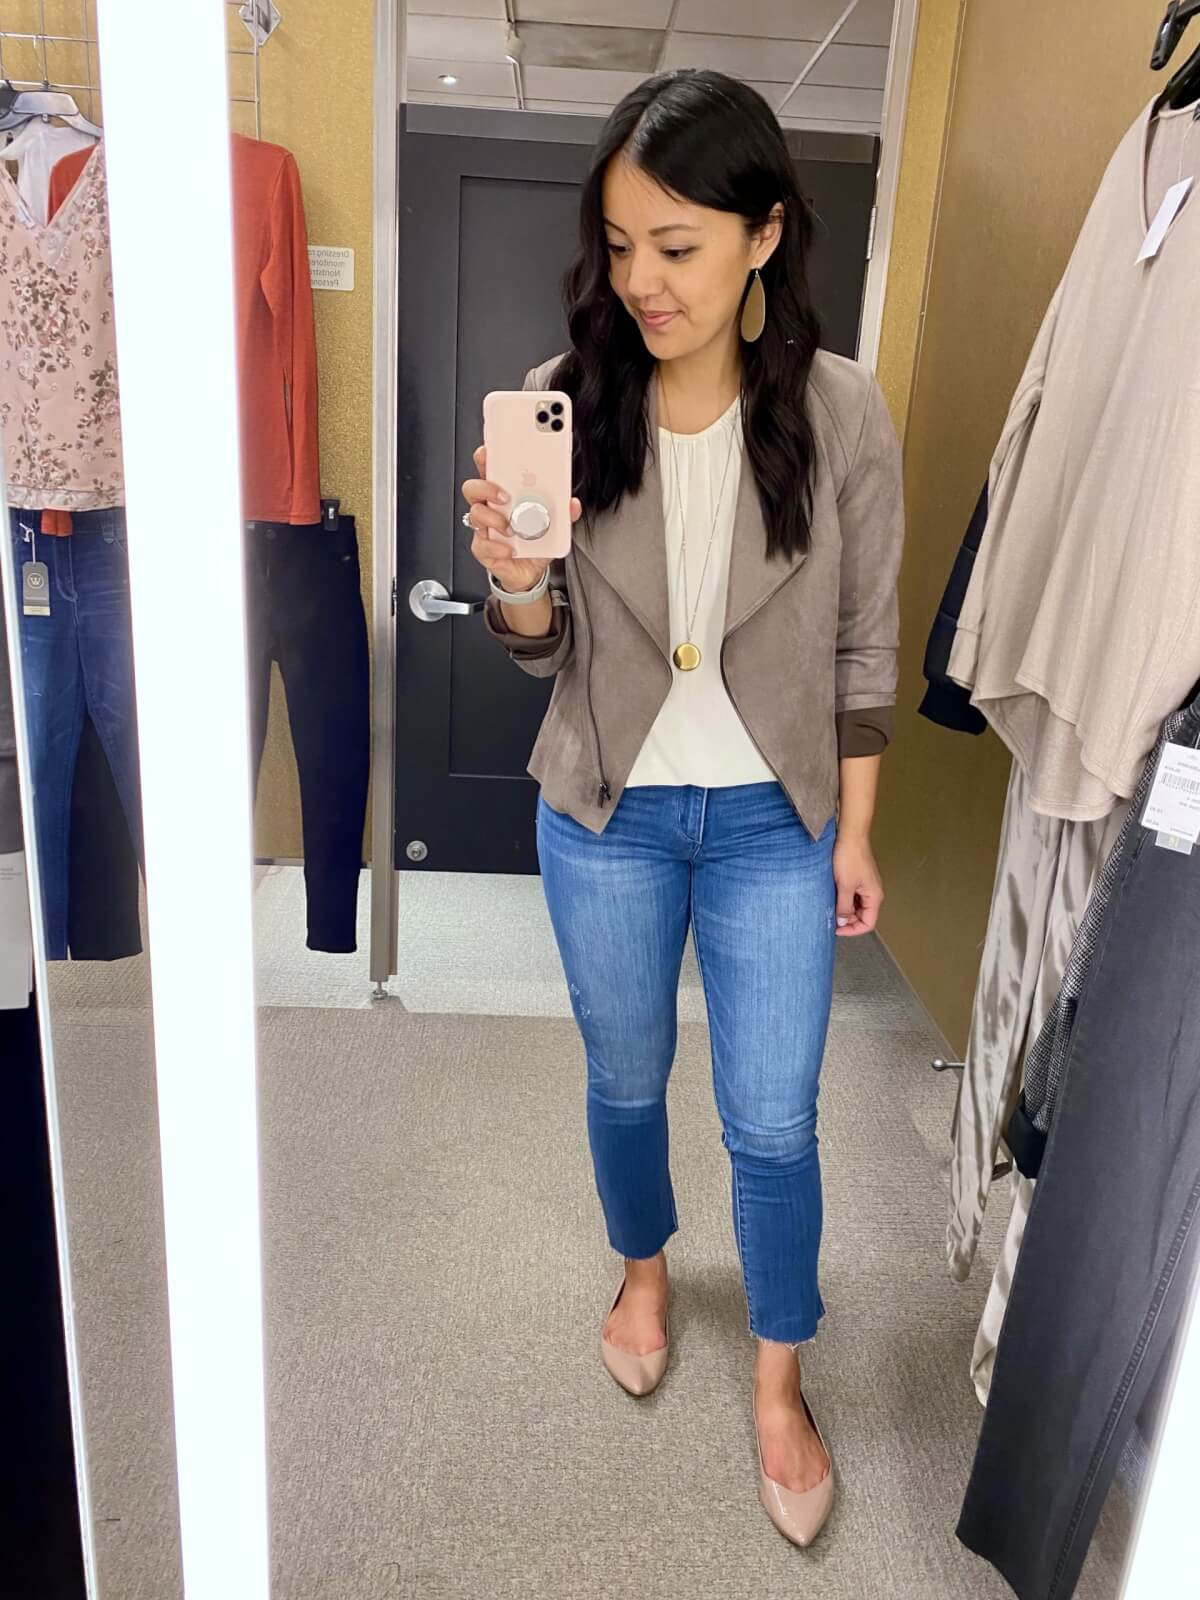 kut from the kloth suede moto jacket taupe + white top + Wit & Wisdom jeans + nude flats + gold earrings + pendant necklace